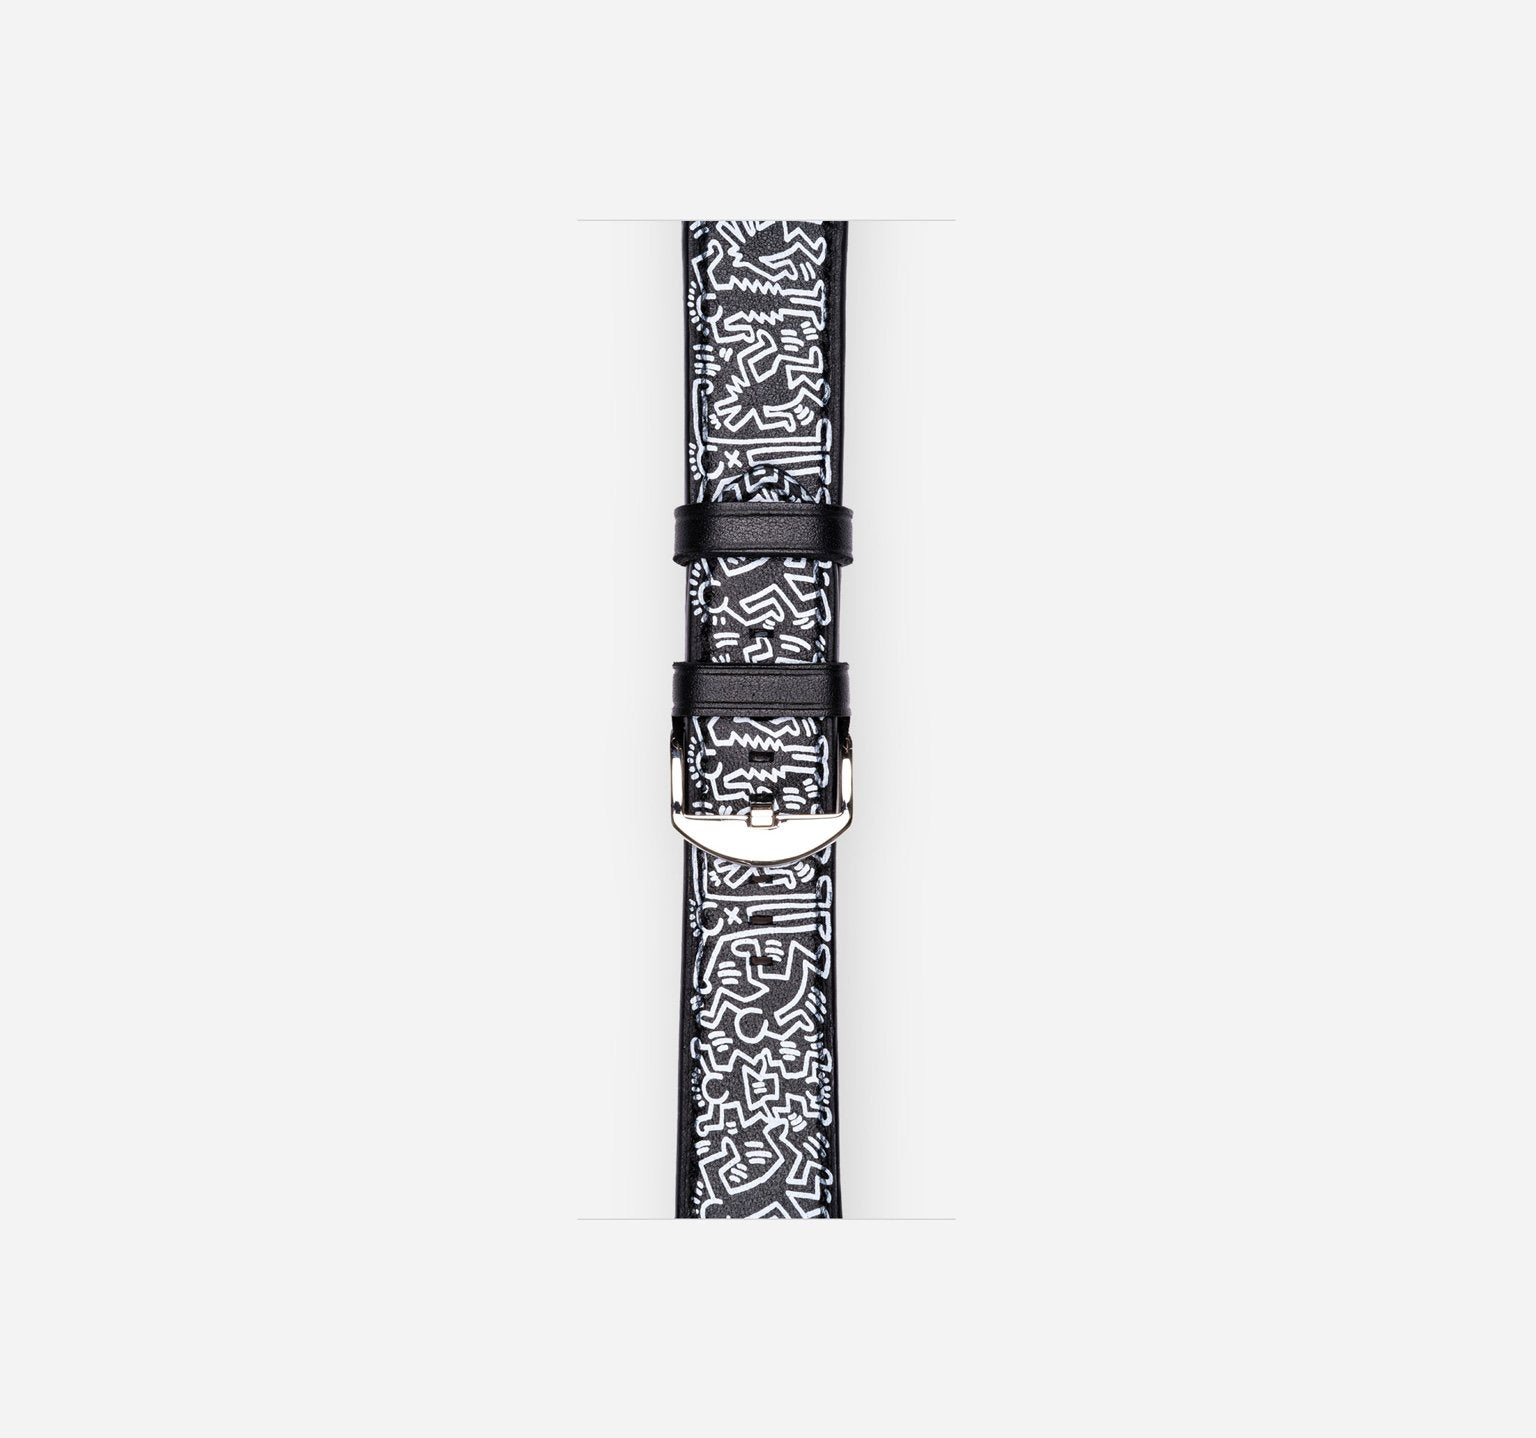 Artline | Keith Haring | Untitled, Black